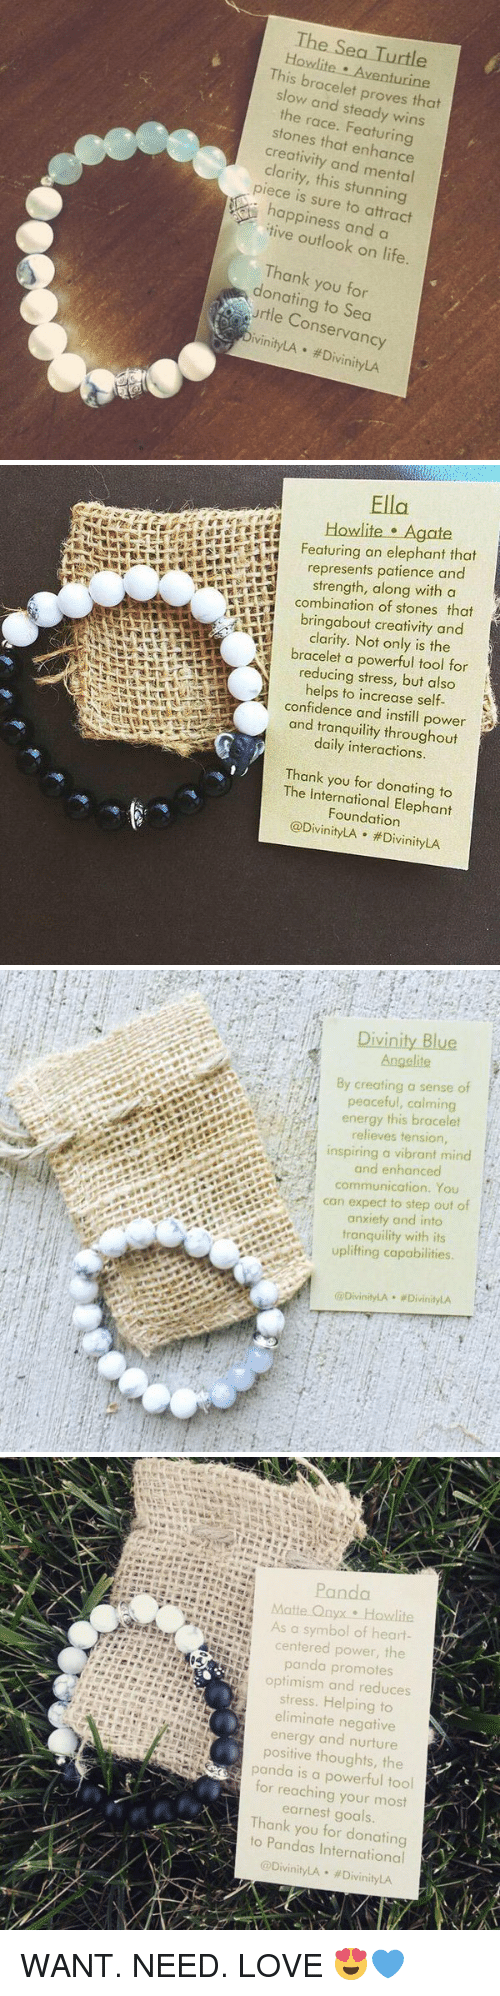 steady-wins-the-race: The Sea Turtle  b  This racelet  proves that  slow and steady wins  the race. stones that enhance  creativity and mental  piece this stunning  happiness a  and outlook on life.  Thank you for  onating Jrtle Conservancy  ivinityLA ivinityLA   Ella  Featuring an elephant that  represents patience and  strength, along with a  KS combination of stones that  bring about creativity and  clarity. Not only is the  bracelet a powerful tool for  reducing stress, but also  helps to increase self-  confidence and instill power  and tranquility throughout  daily interactions.  Thank  you for donating to  The Foundation  Vini  LA #Divinity LA   By creating a sense of  peaceful, calming  energy this bracelet  relieves tens  inspiring a vibrant mind  and enhanced  communication. You  can expect to step out of  anxiety and into  tranquility with its  uplifting capabilities  Divinity LA wDivinityLA   Panda  As a symbol of heart  centered power, the  panda promotes  optimism and reduces  stress. Helping to  eliminate negative  energy and nurture  positive thoughts, the  panda is a powerful tool  for reaching your most  earnest goals  Thank  you for donating  to @Divinity #DivinityLA  LA WANT. NEED. LOVE 😍💙